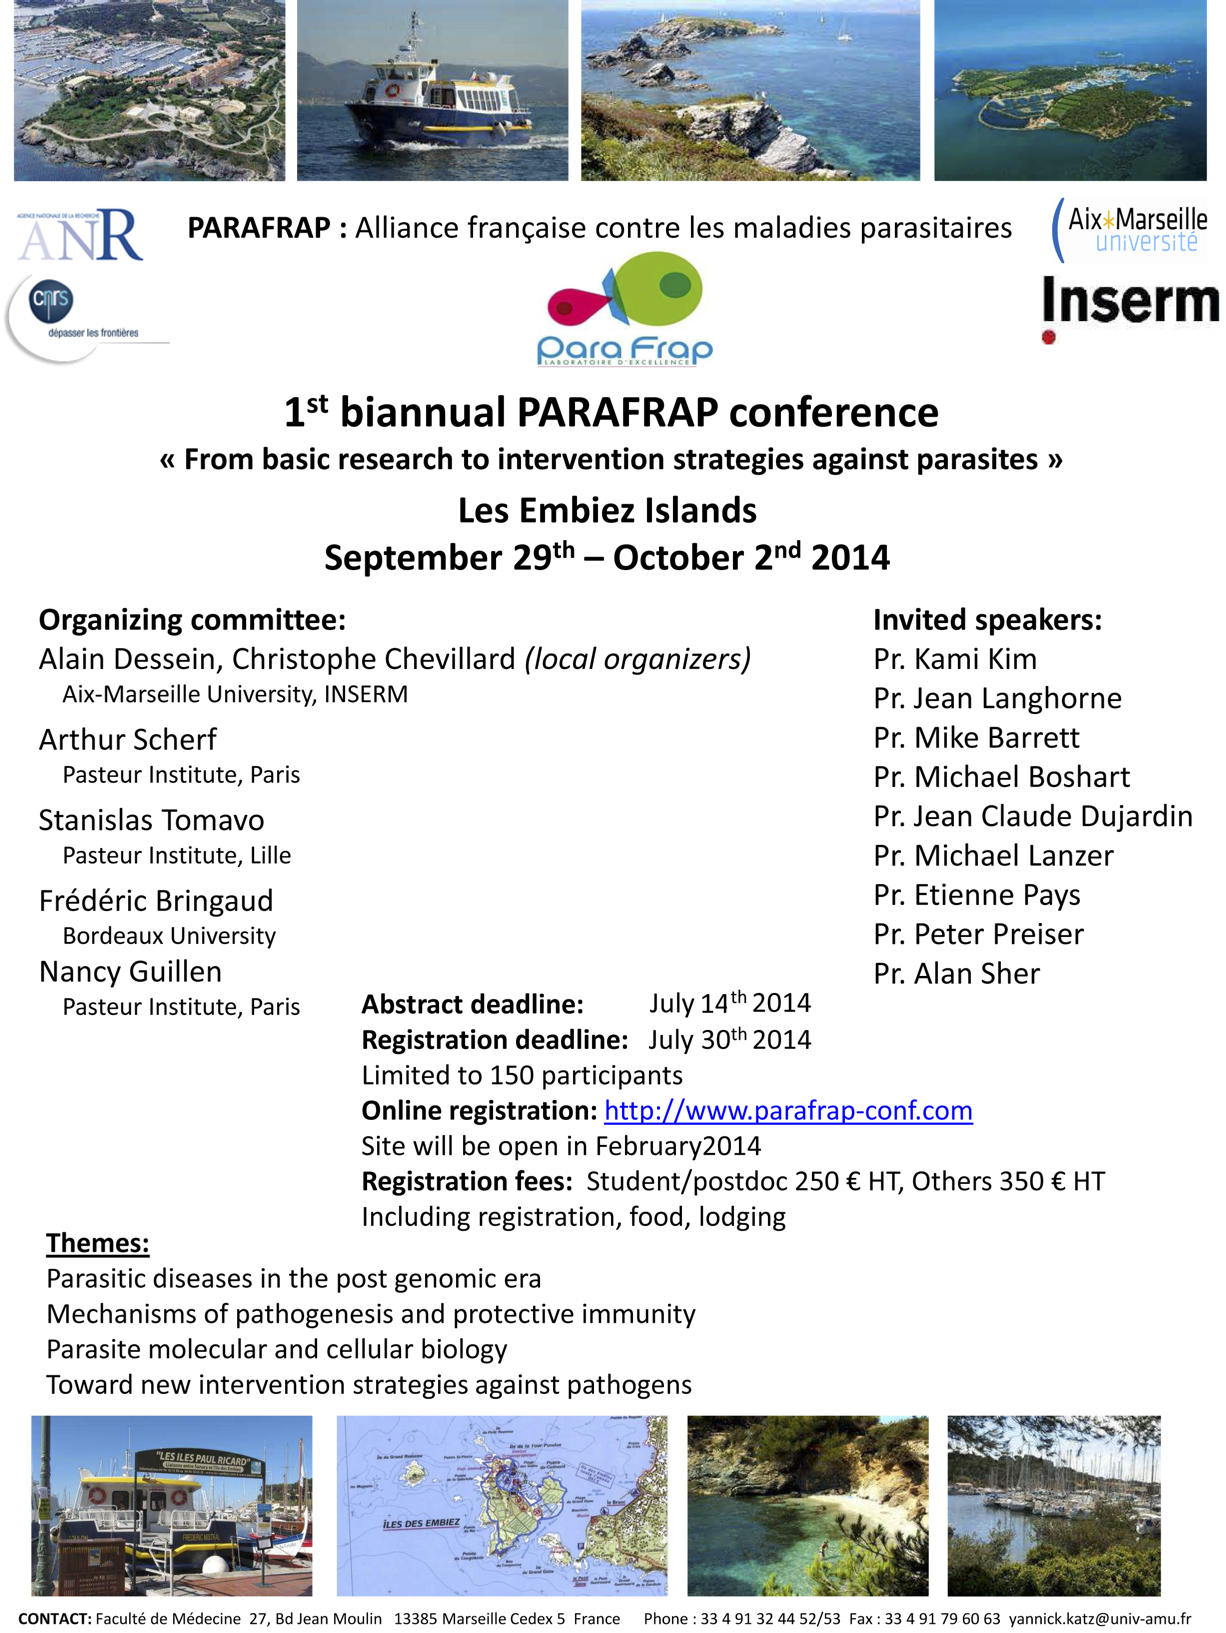 ParaFrap International Parasitology Meeting